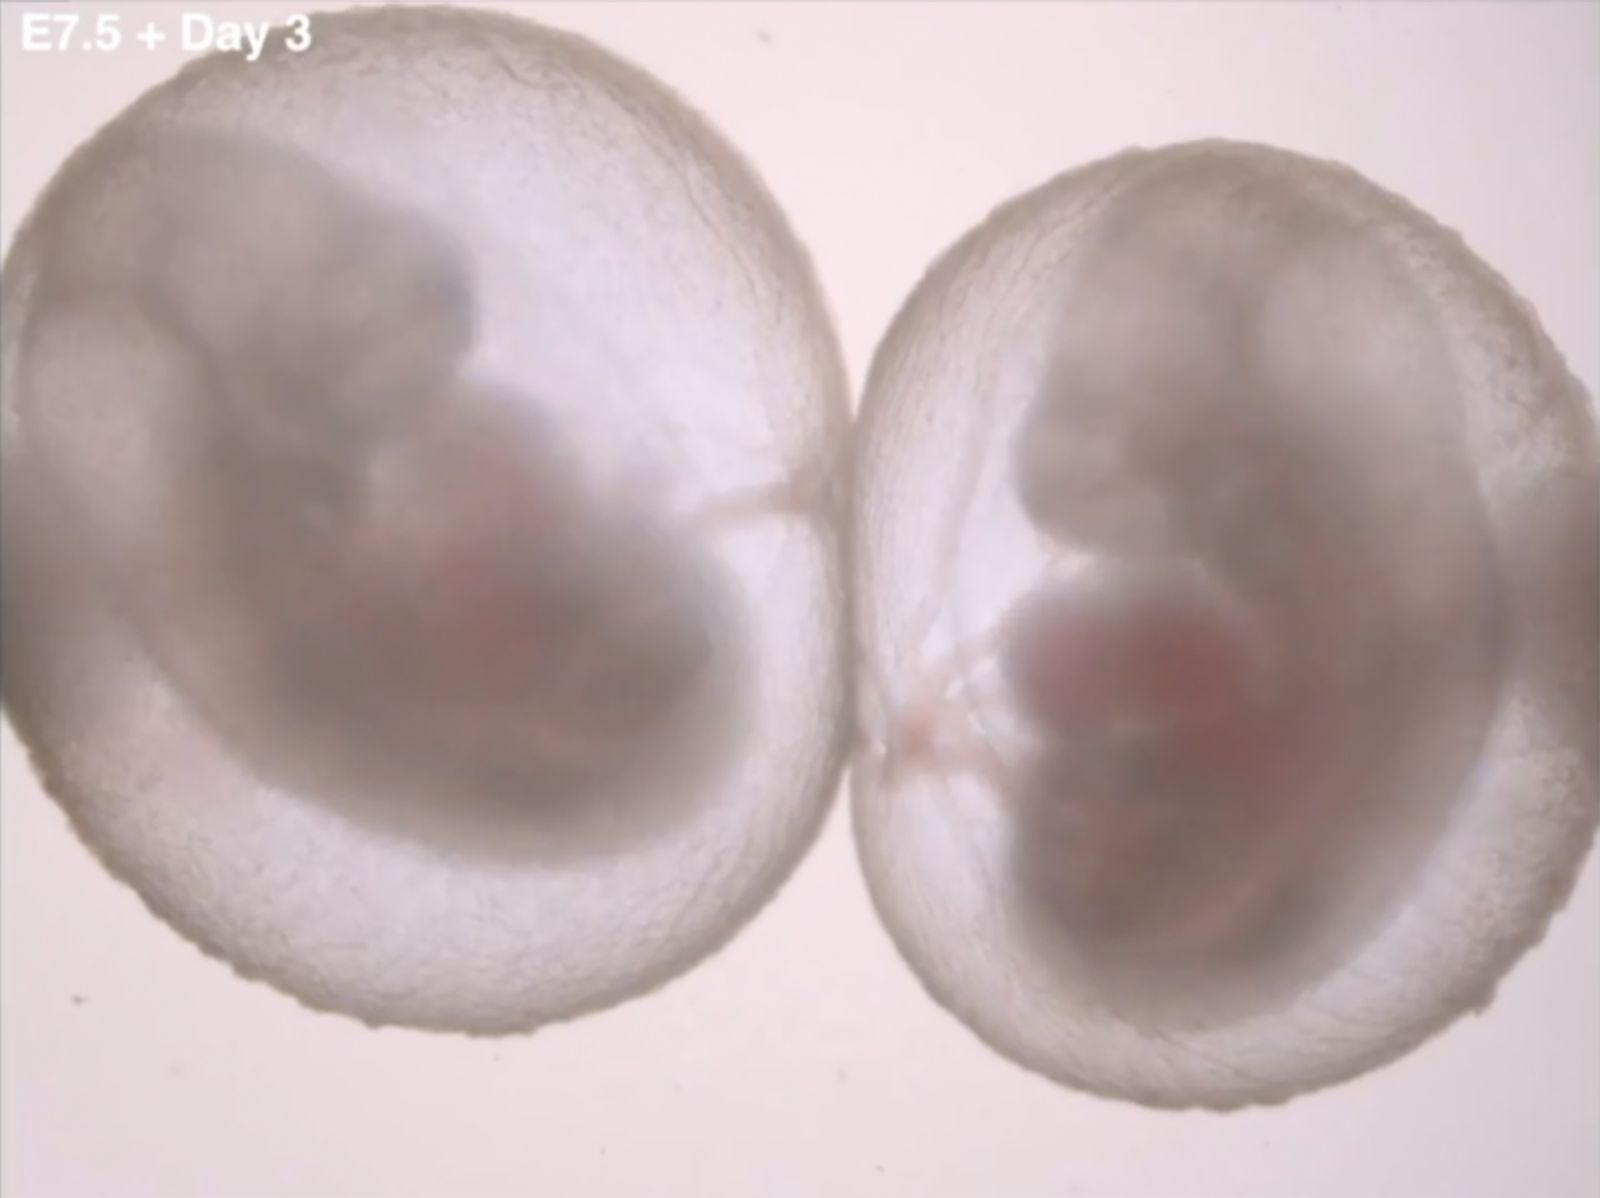 Mouse embryos grown in bottles form organs and limbs